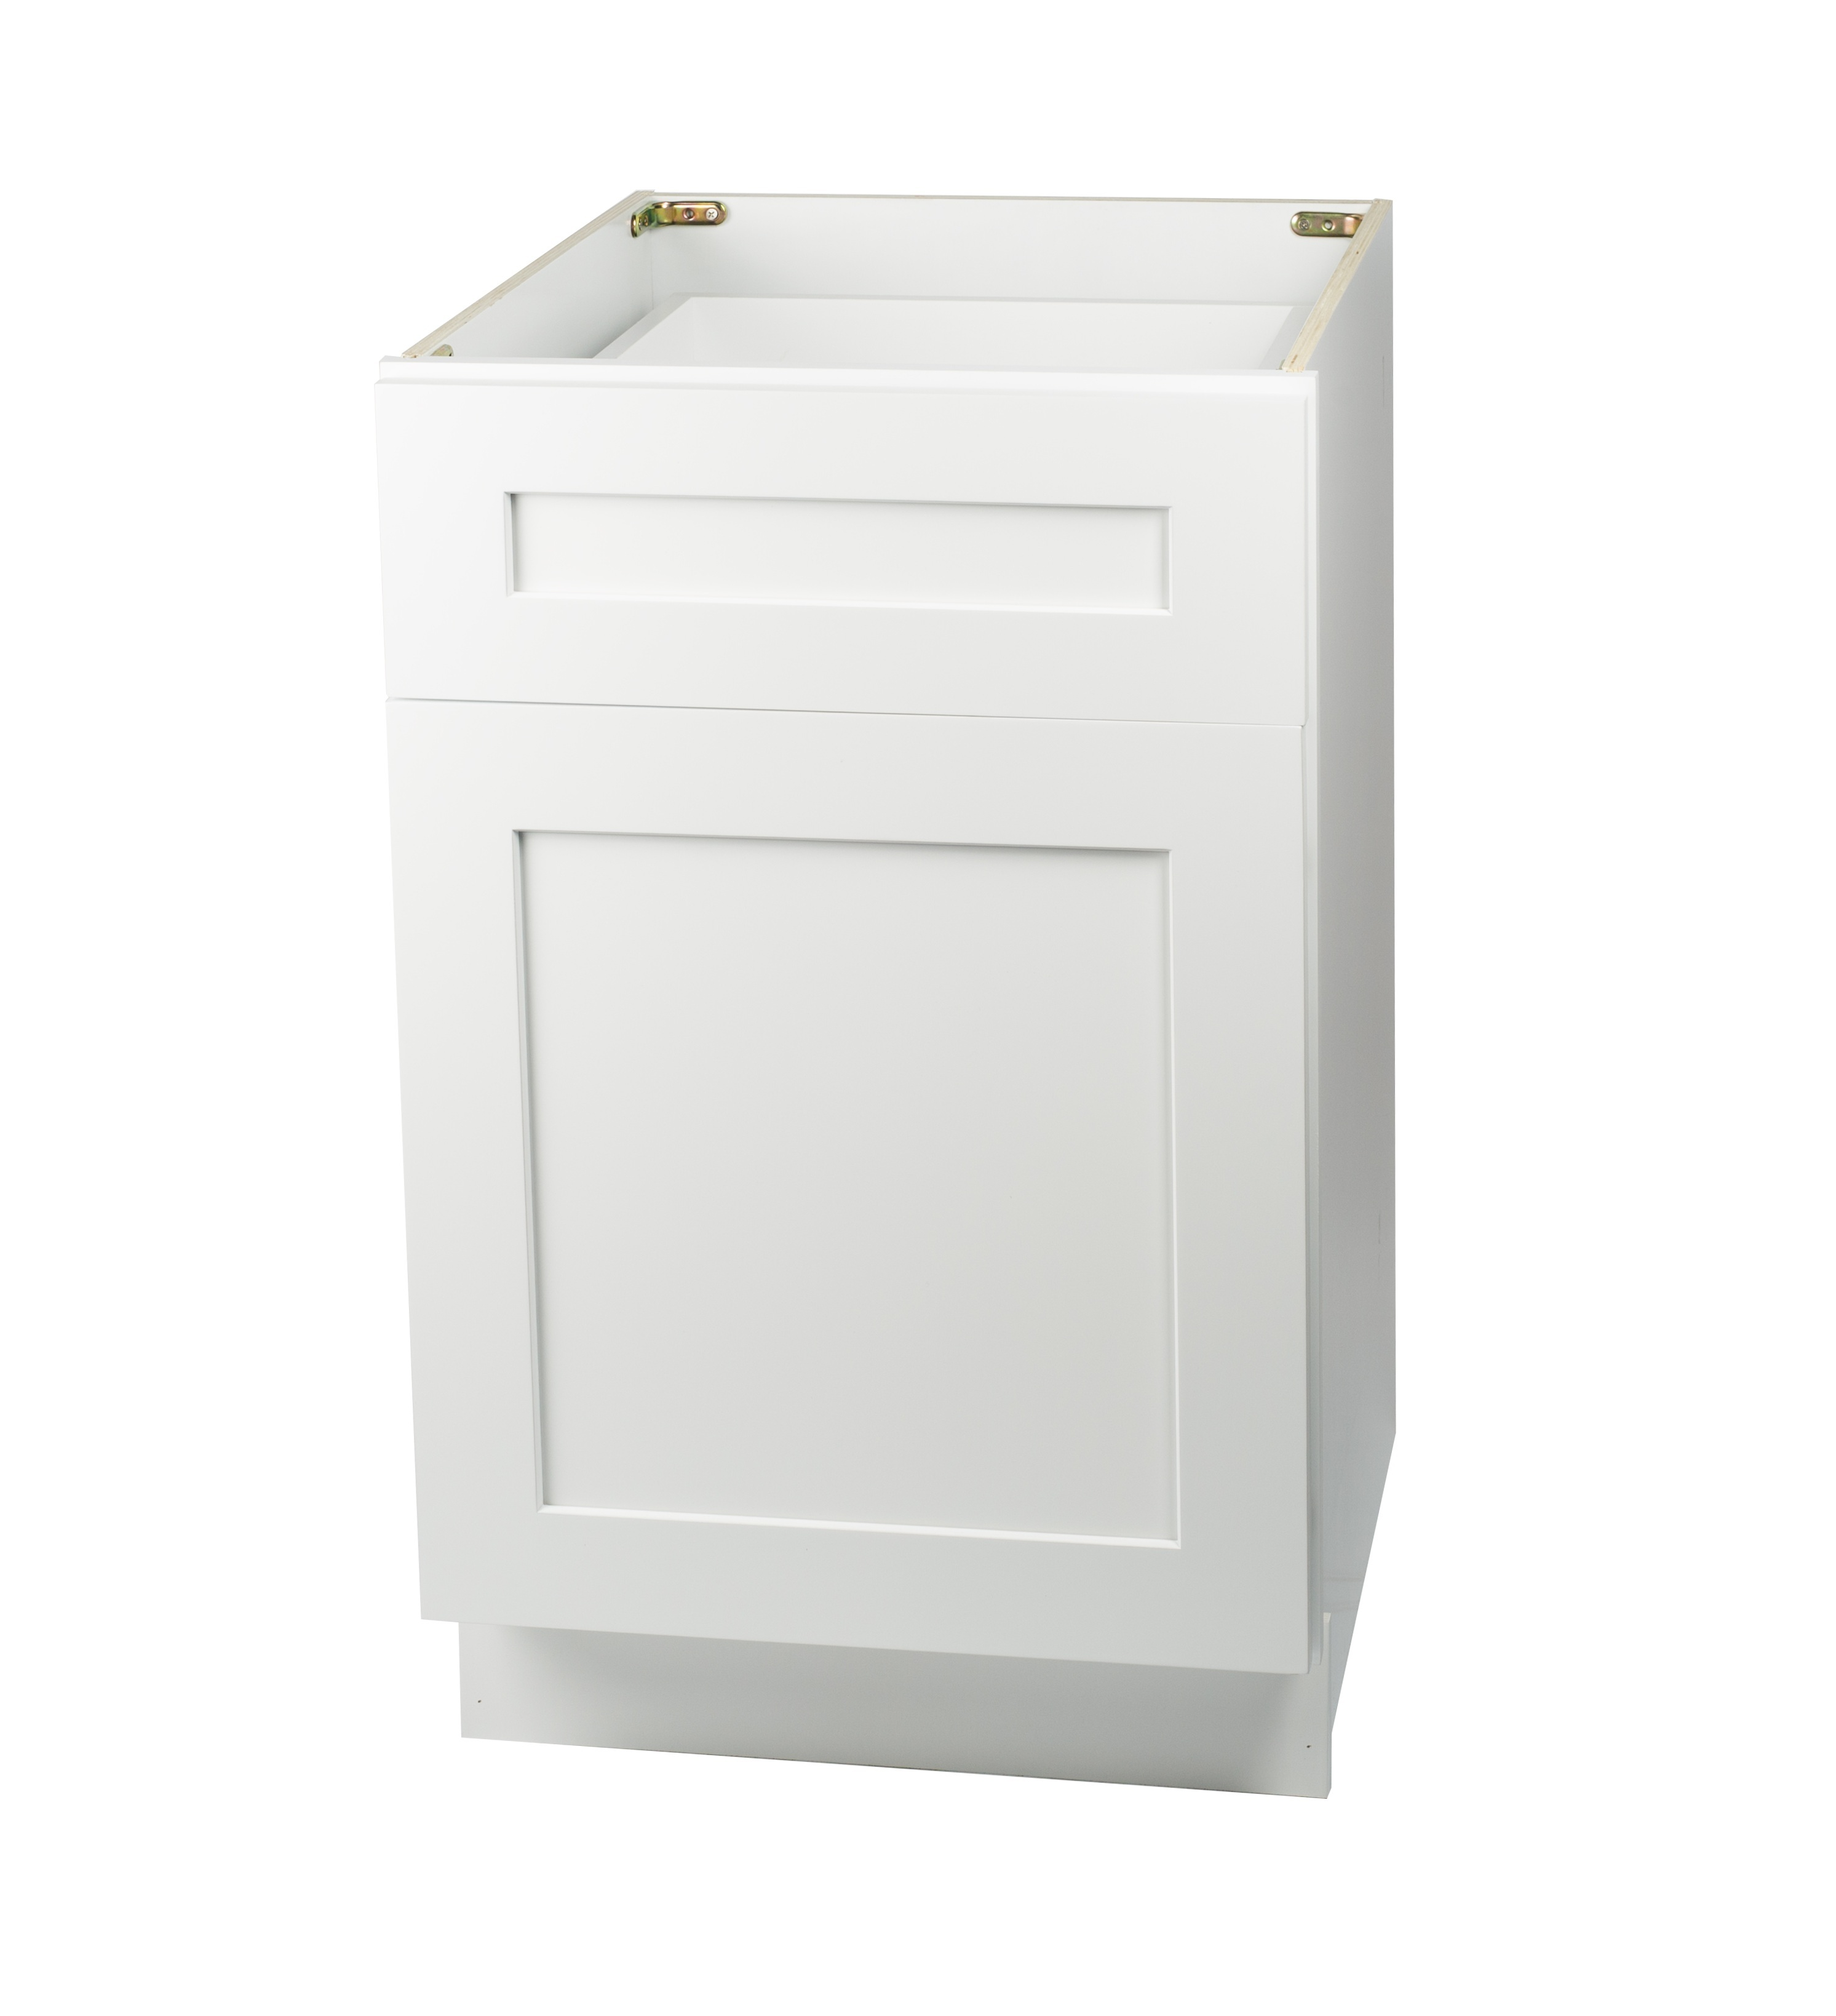 Ready to Assemble 24Wx34.5Hx24D in. Shaker Base Cabinet with 1 Door and 1 Drawer in White